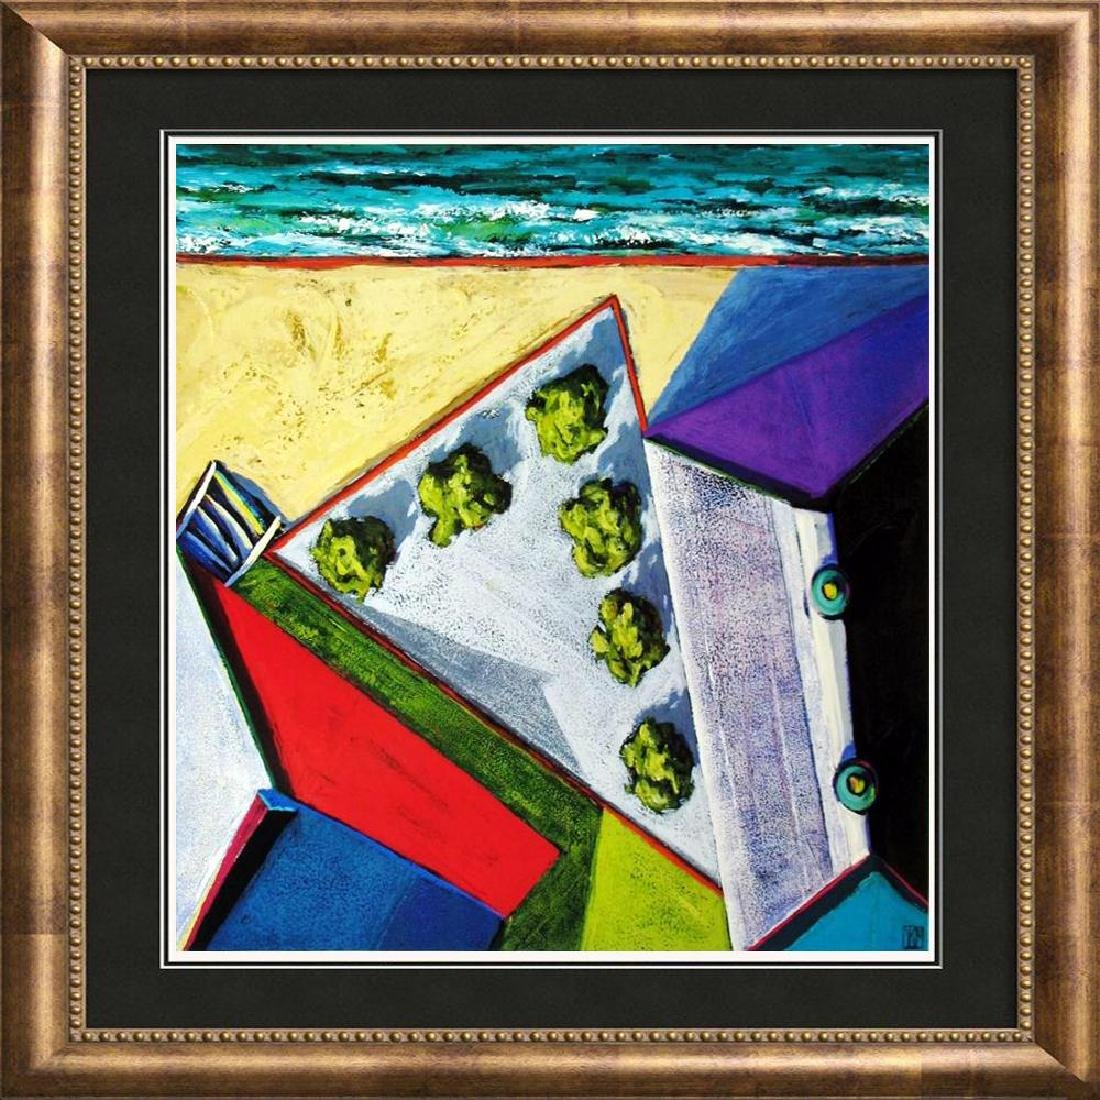 Abstract Modern Art Print Architectural Birds Eye View